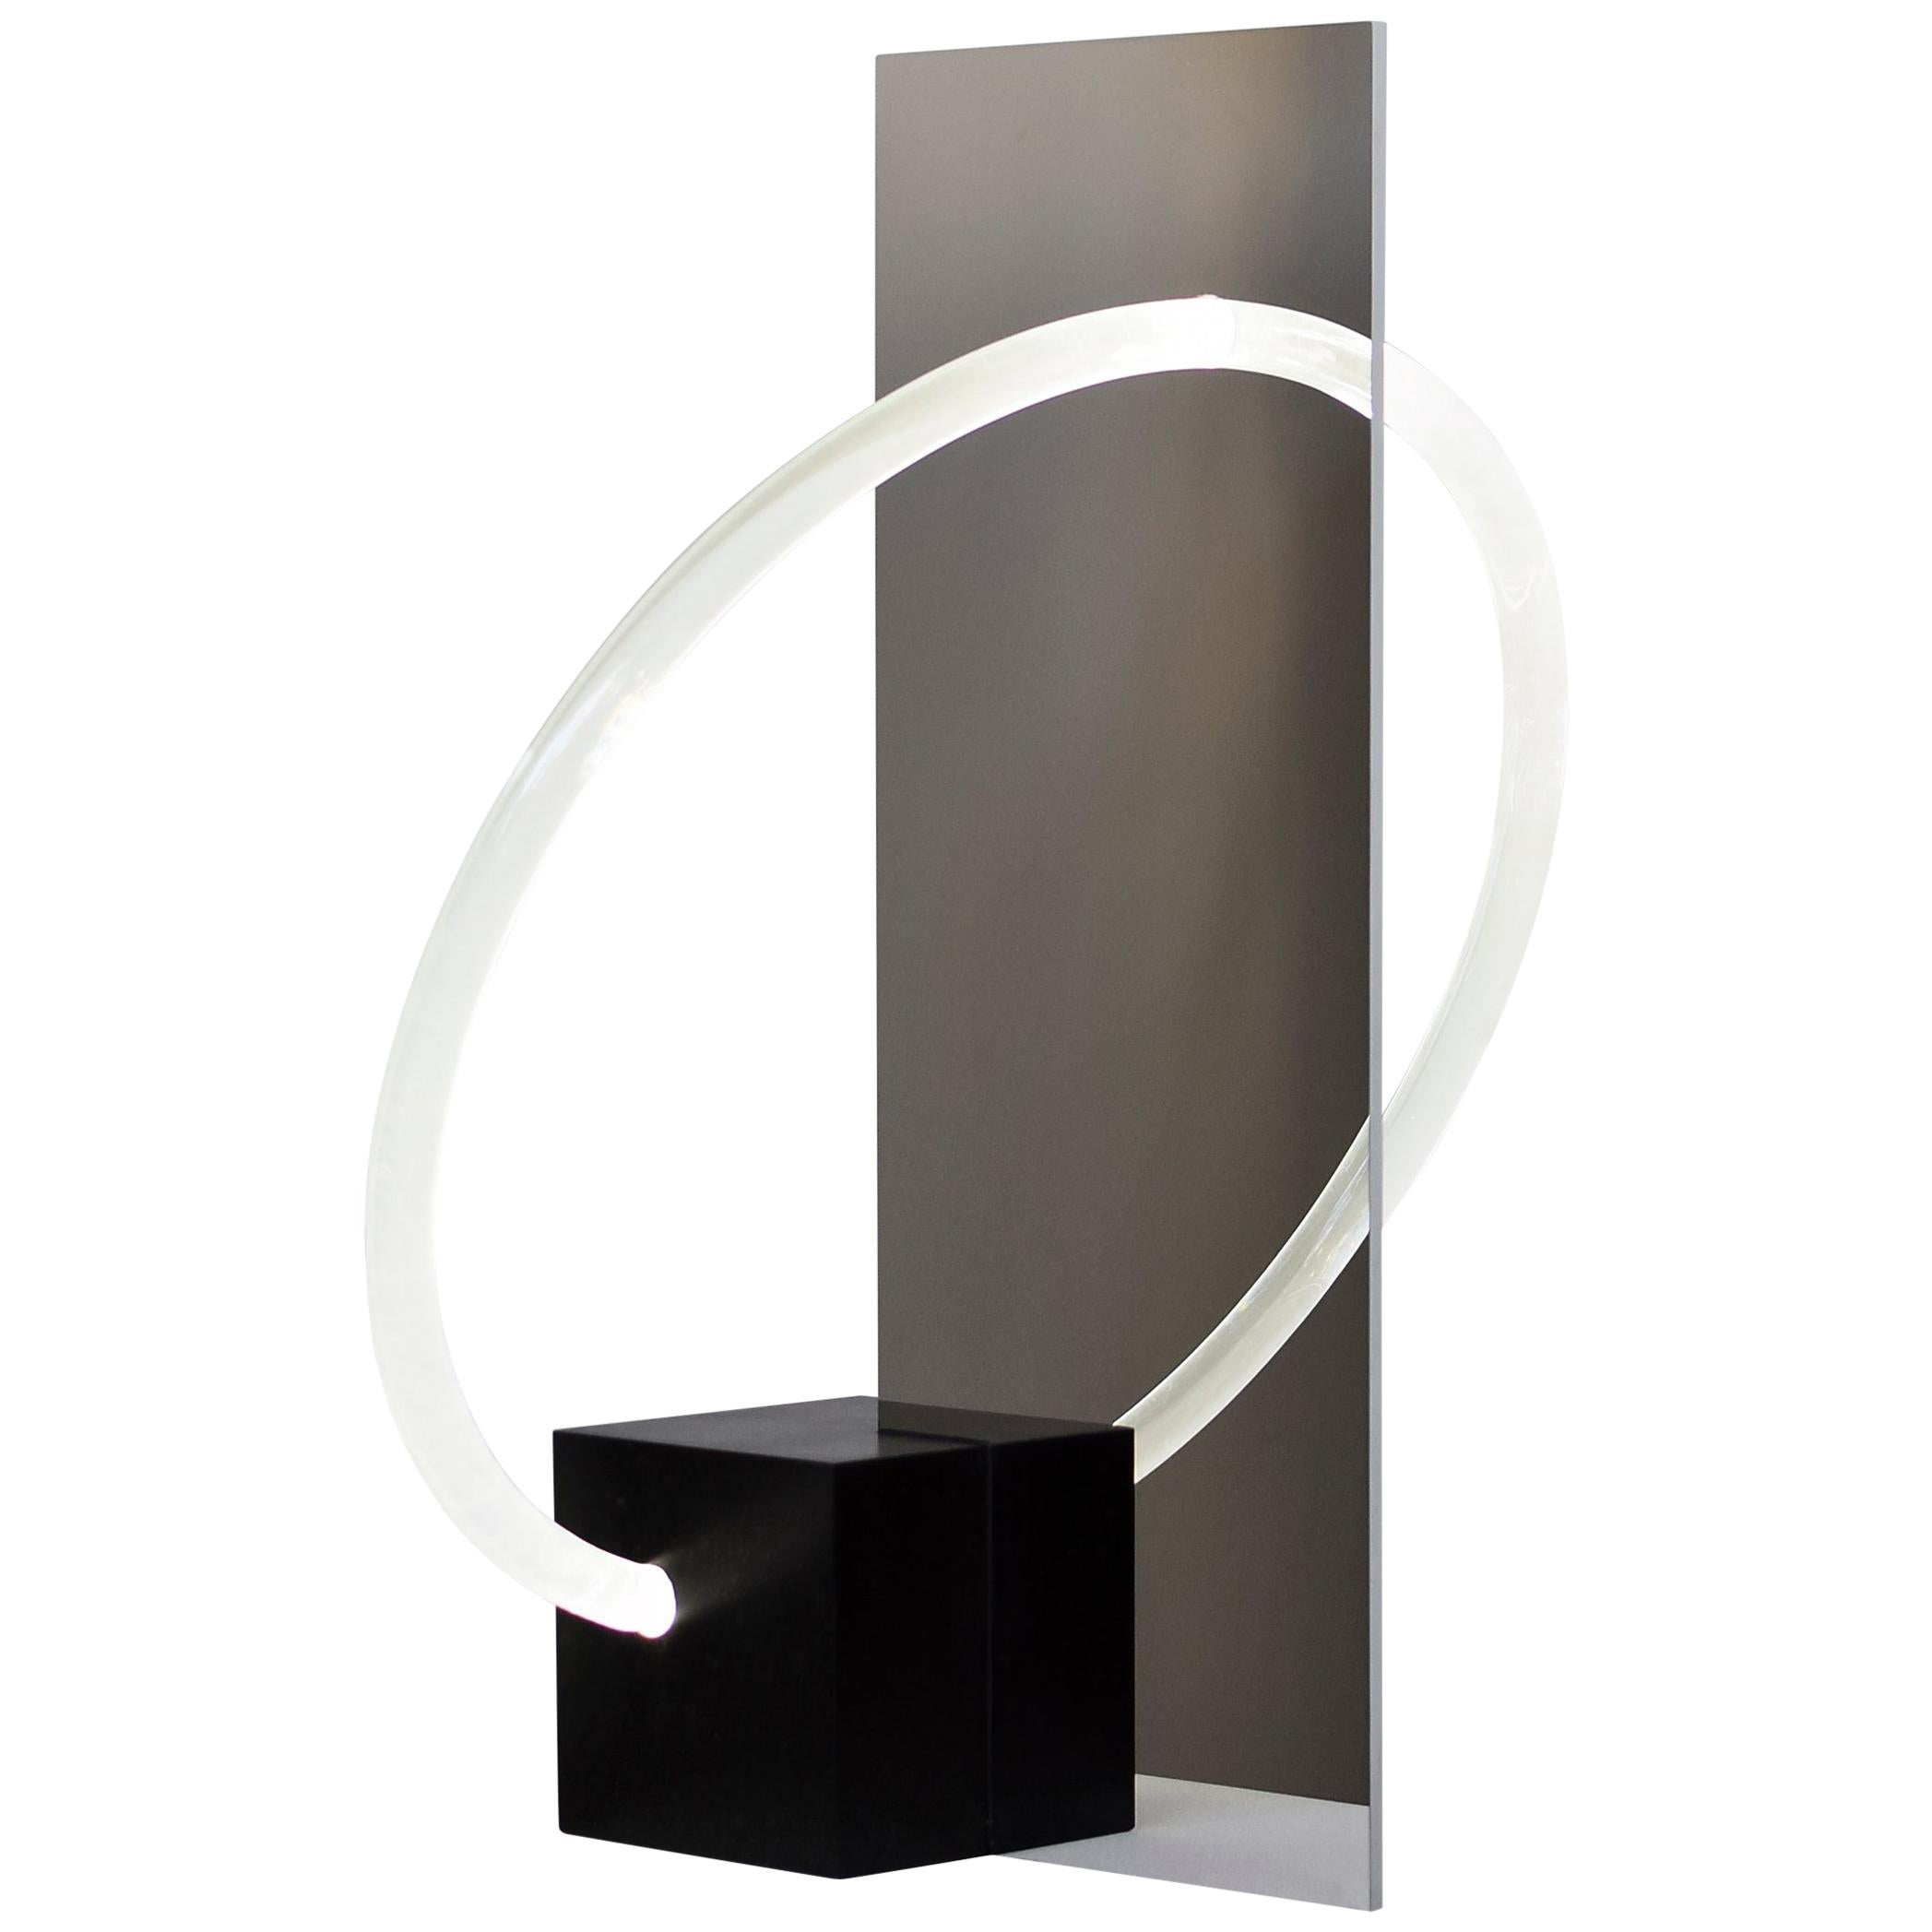 Contemporary Sculptural Lamp and Mirror 'Elusive 01'